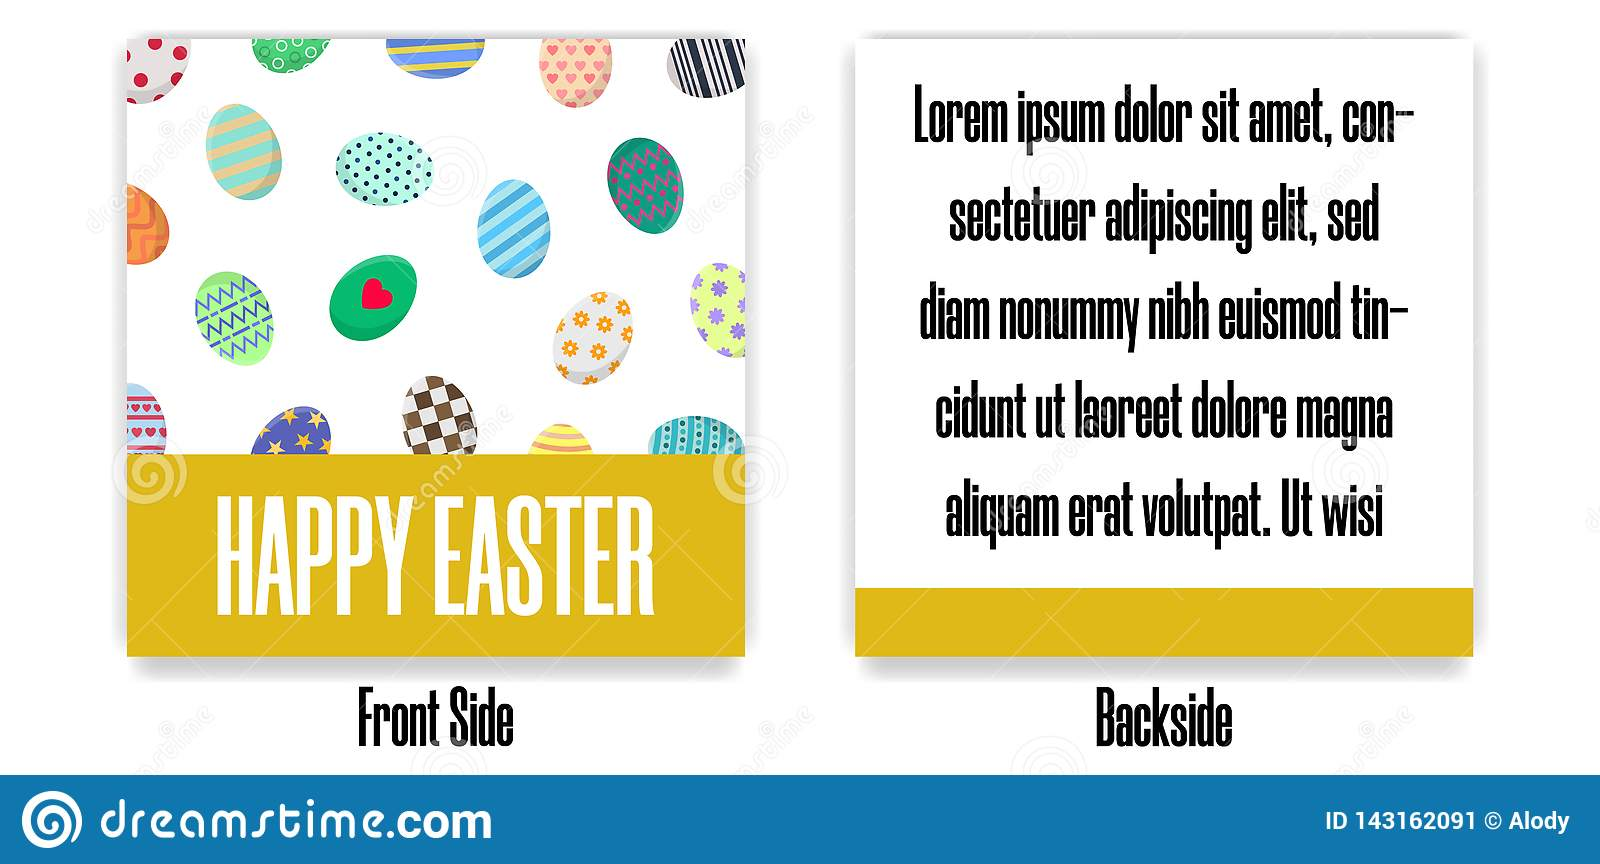 Easter Postcard. Greeting or Invitation with Different Eggs. Front Side and Backside of Postcard. Vector illustration.